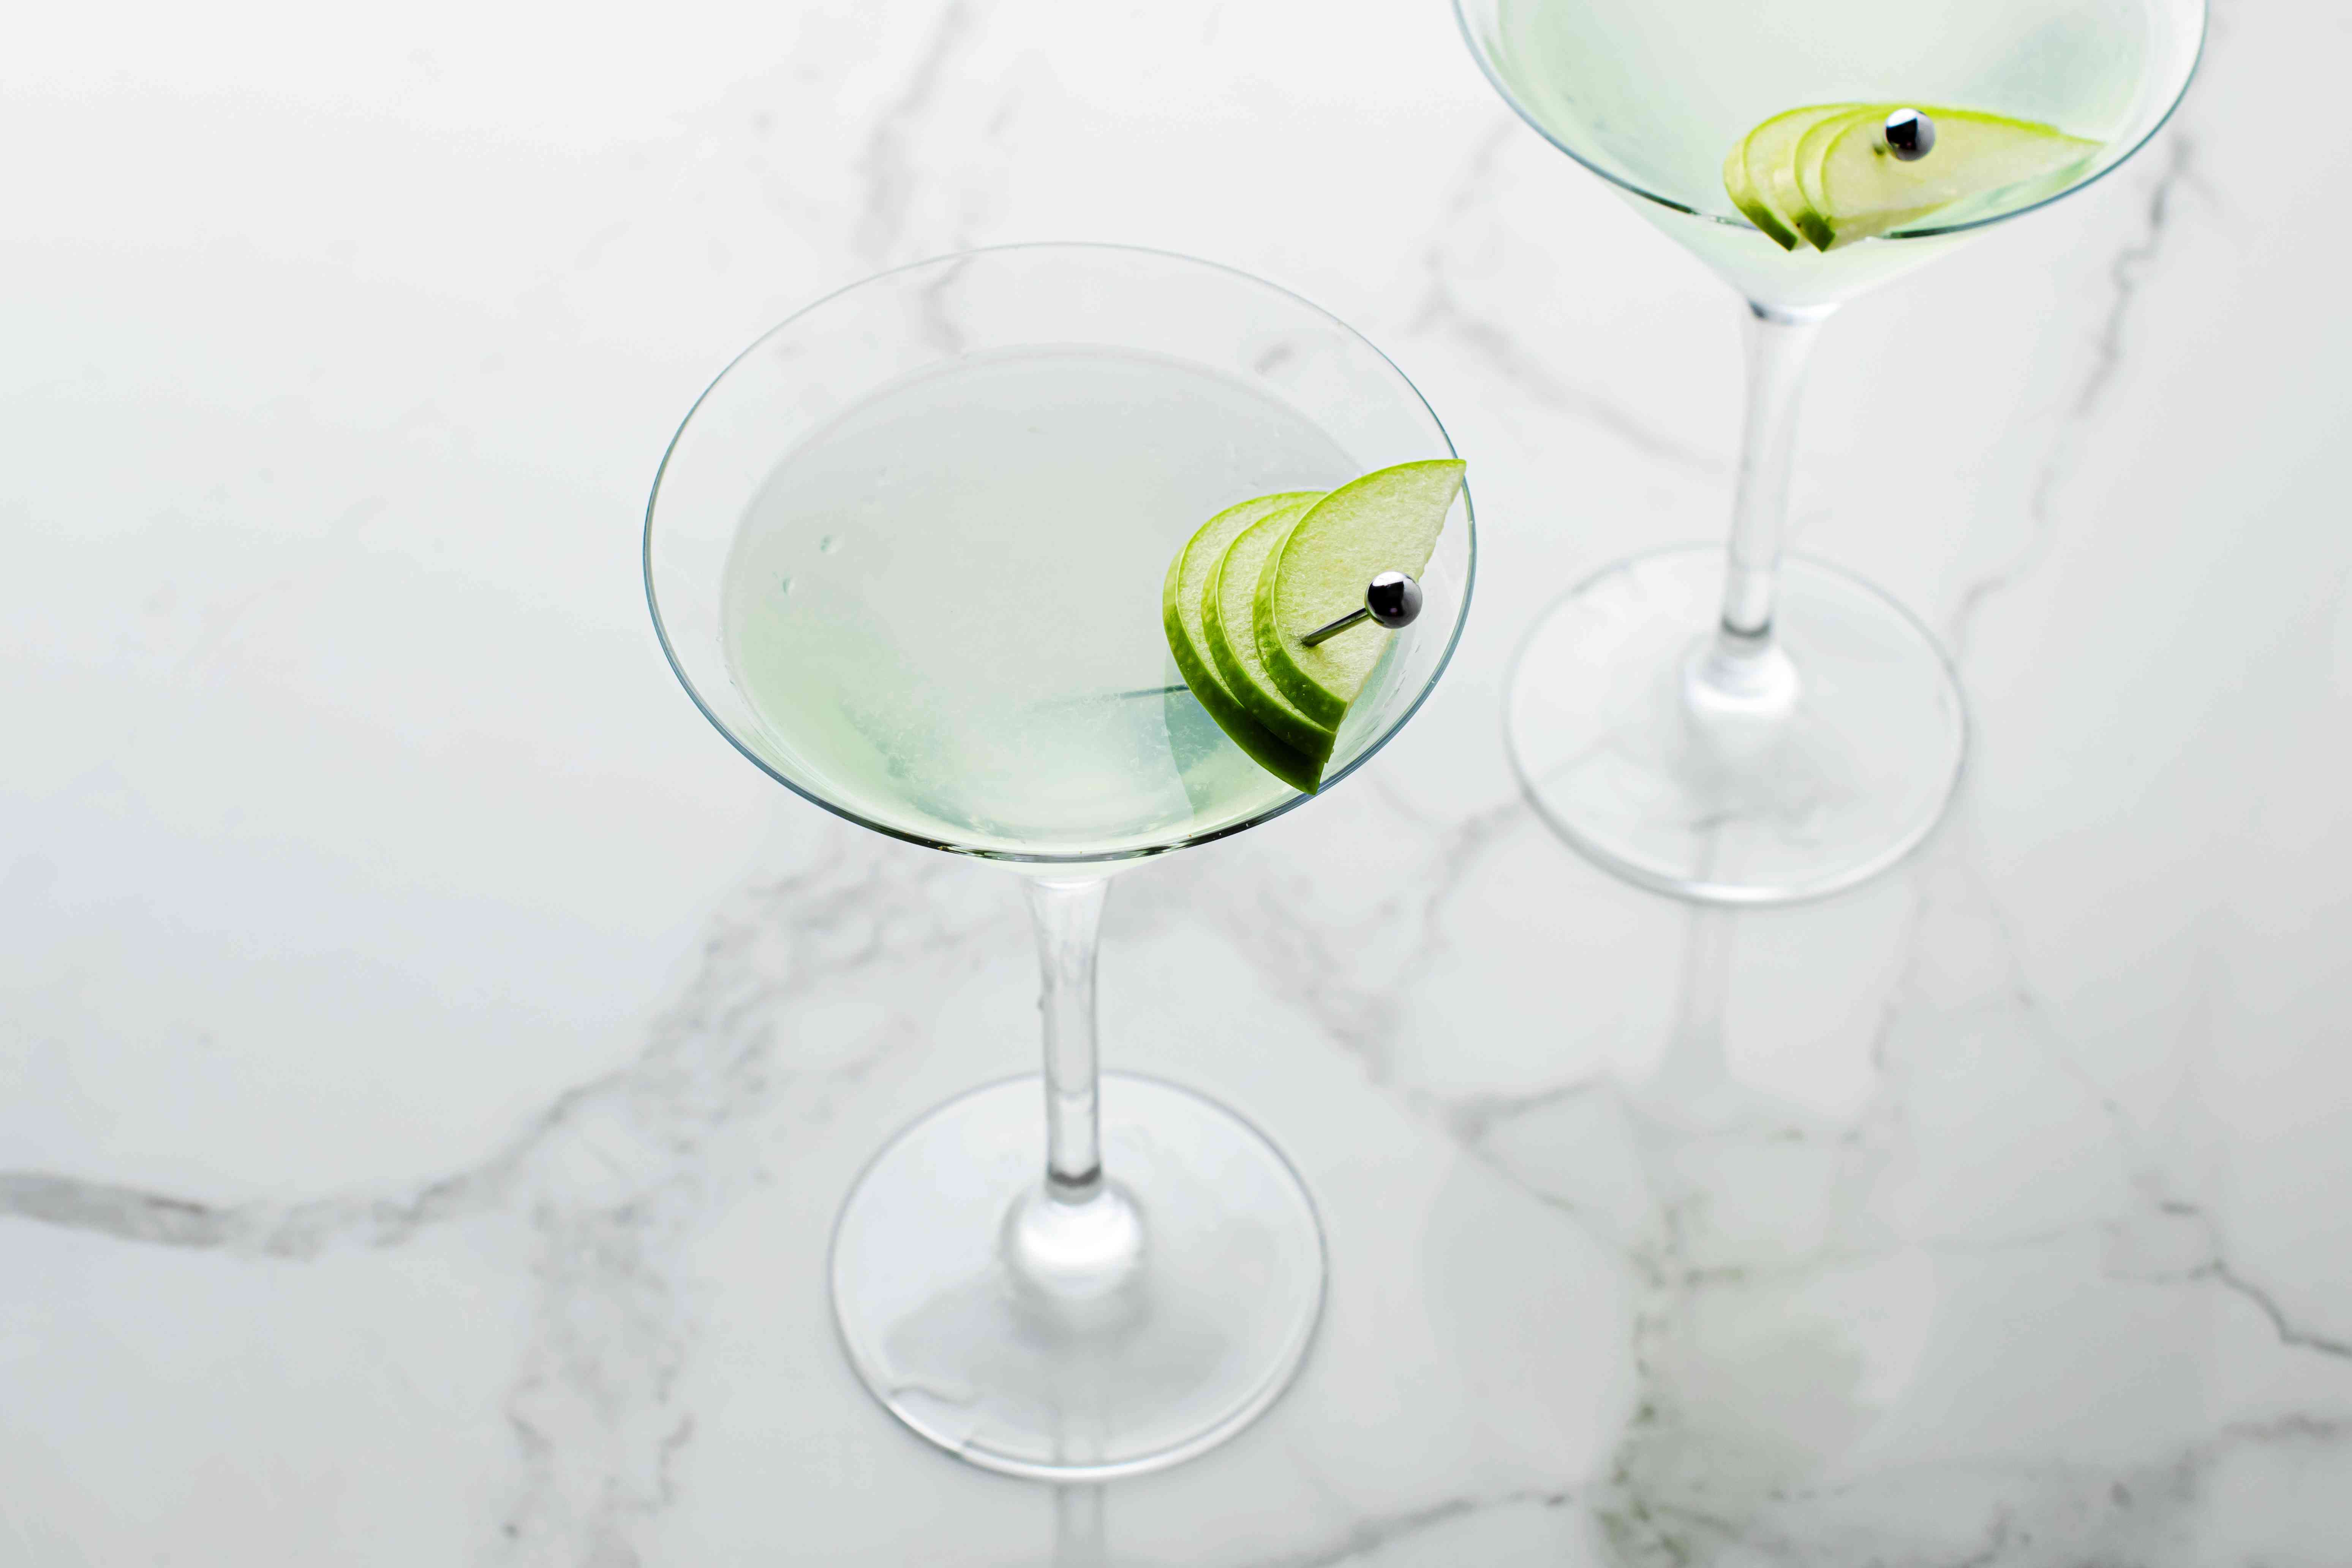 Green apple martini cocktails on a white marble counter